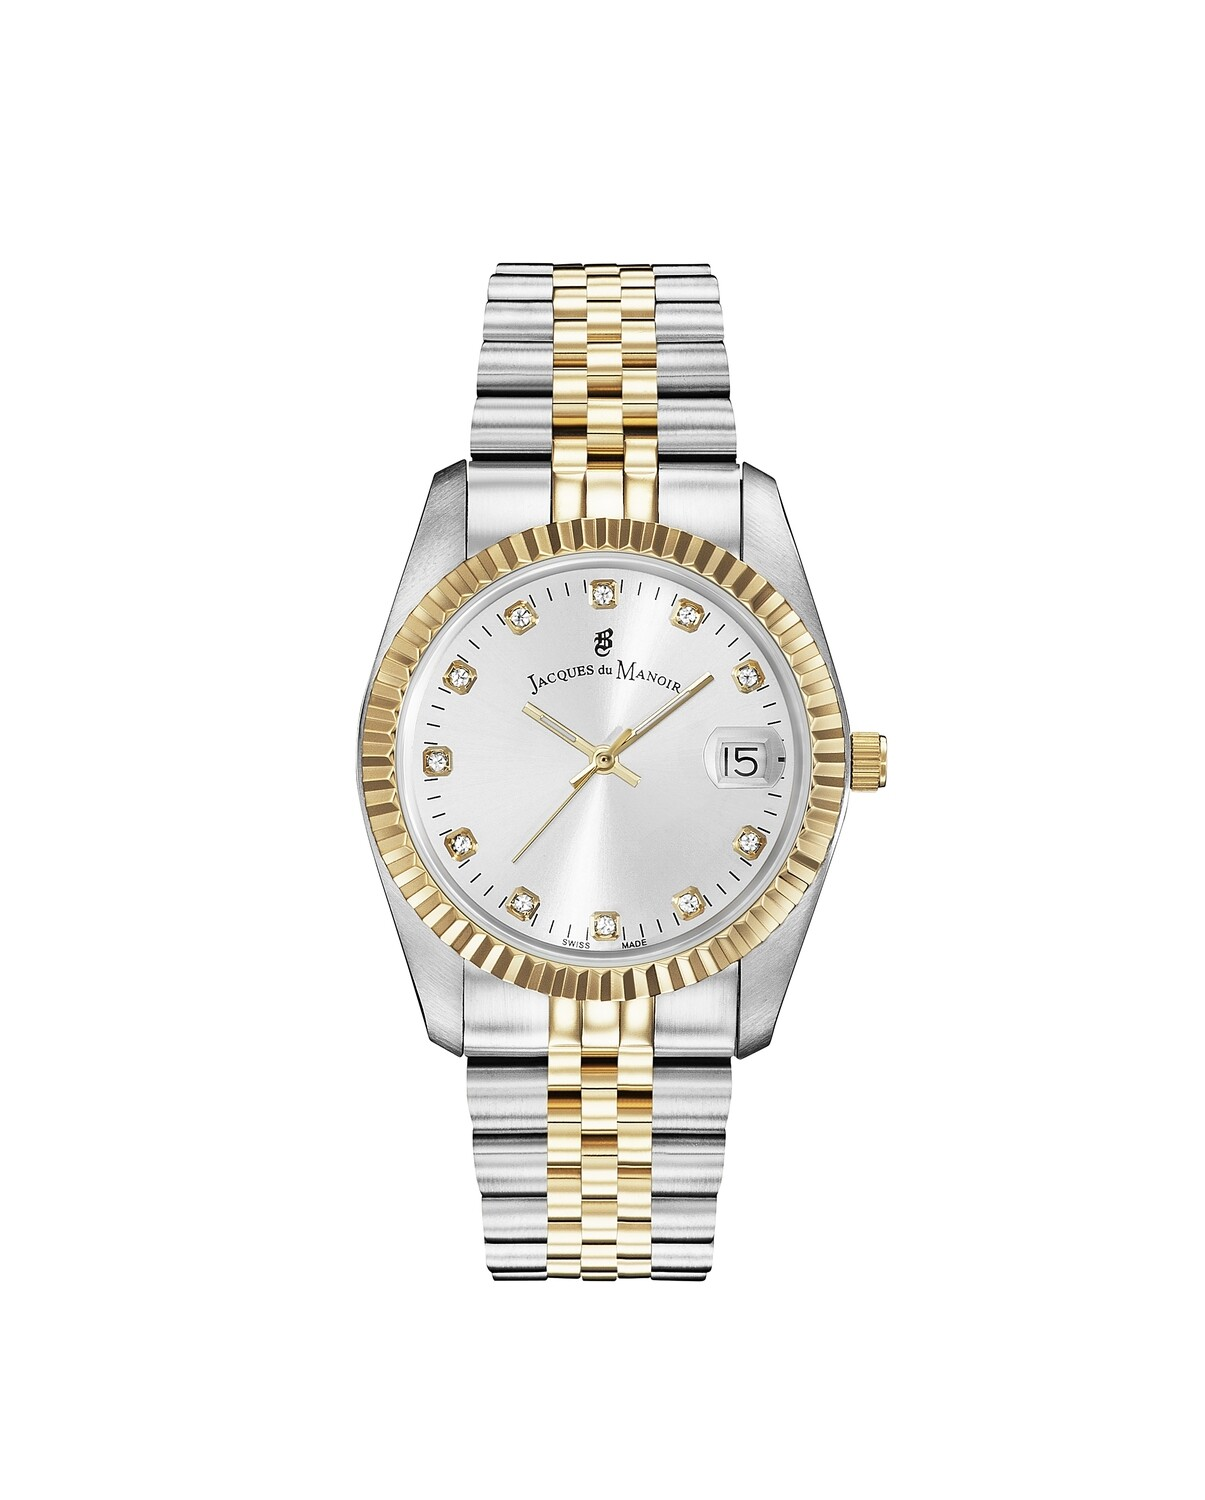 Inspiration SS IPGold Two Tone case, SILVER Dial, SS IPGold Two Tone Bracelet, 36.0 mm